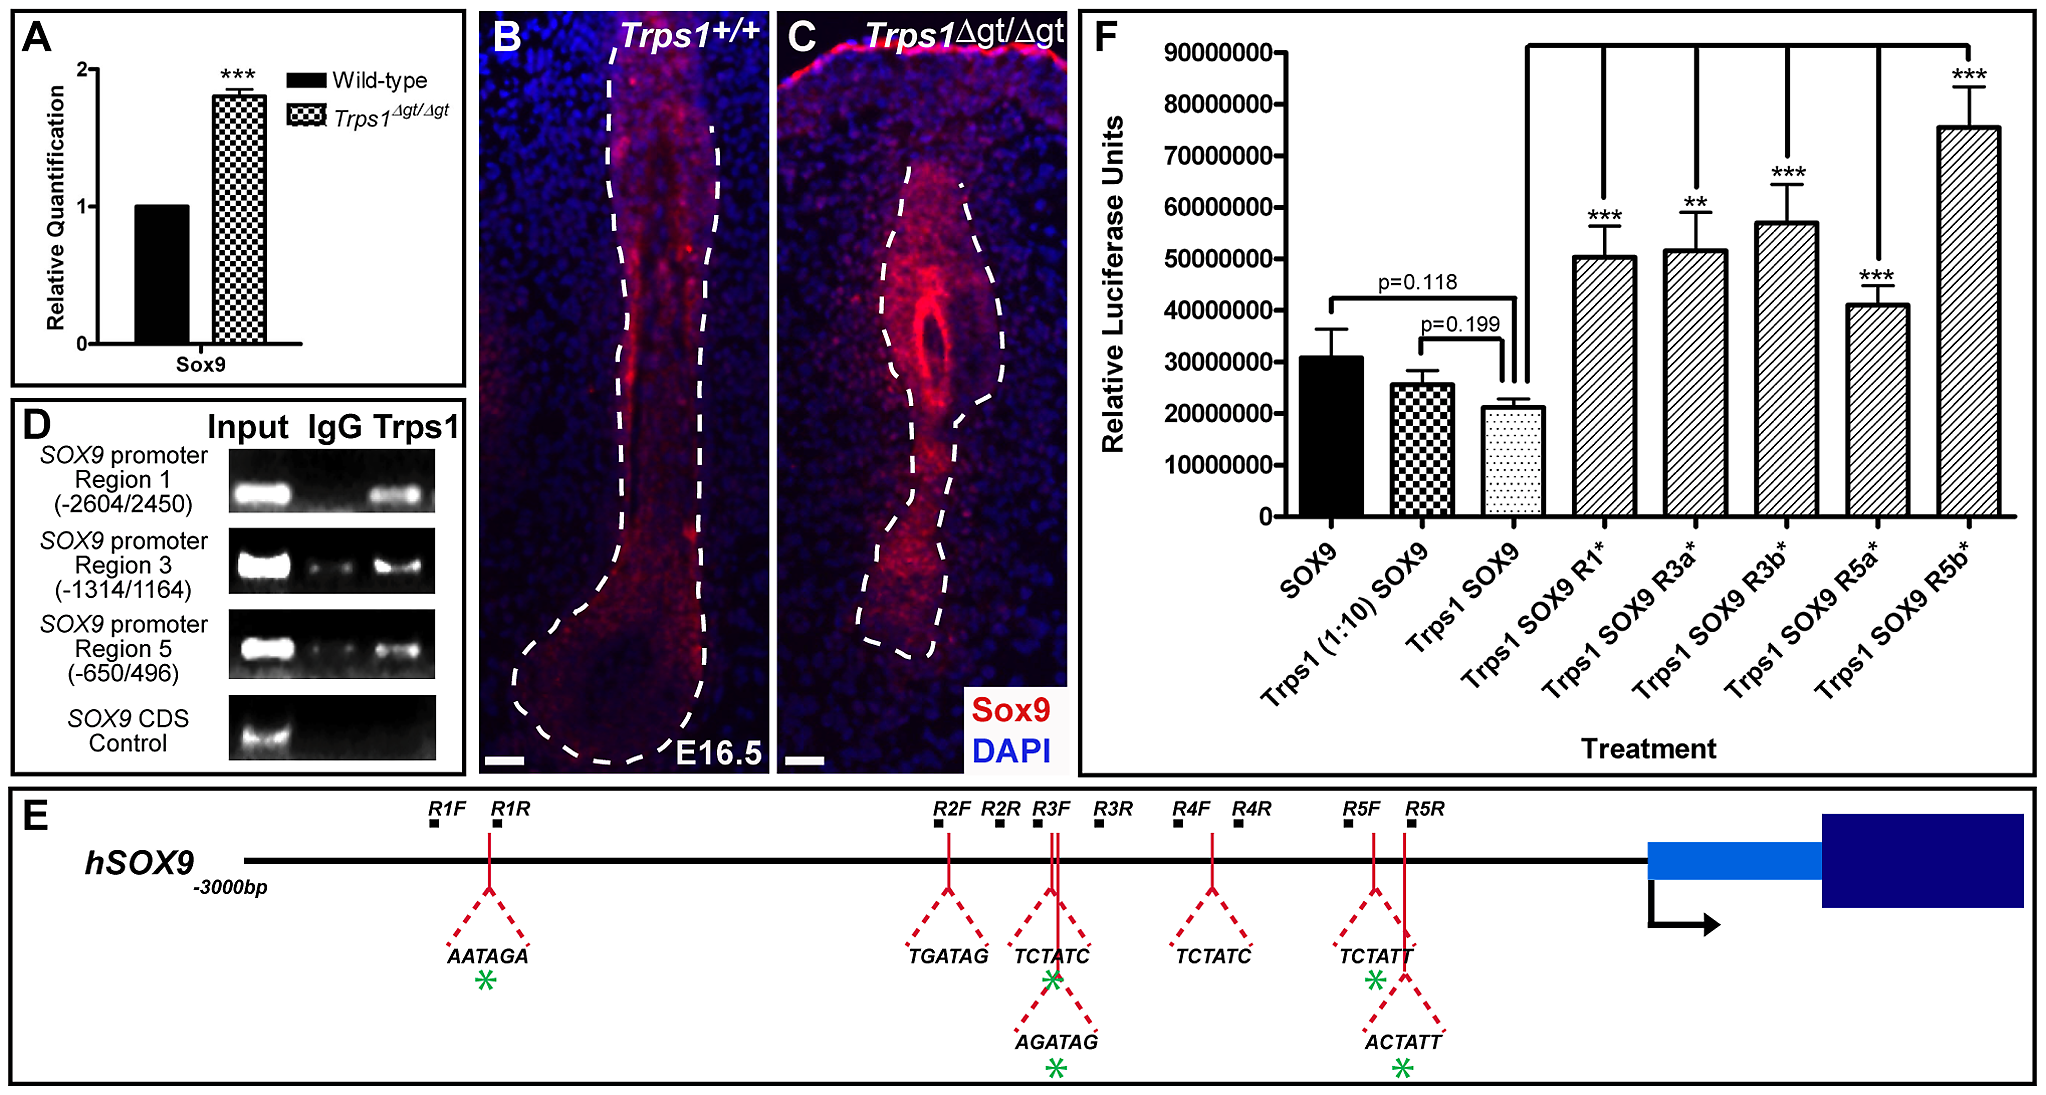 Trps1 directly represses the expression of <i>Sox9</i> in the vibrissa follicle.